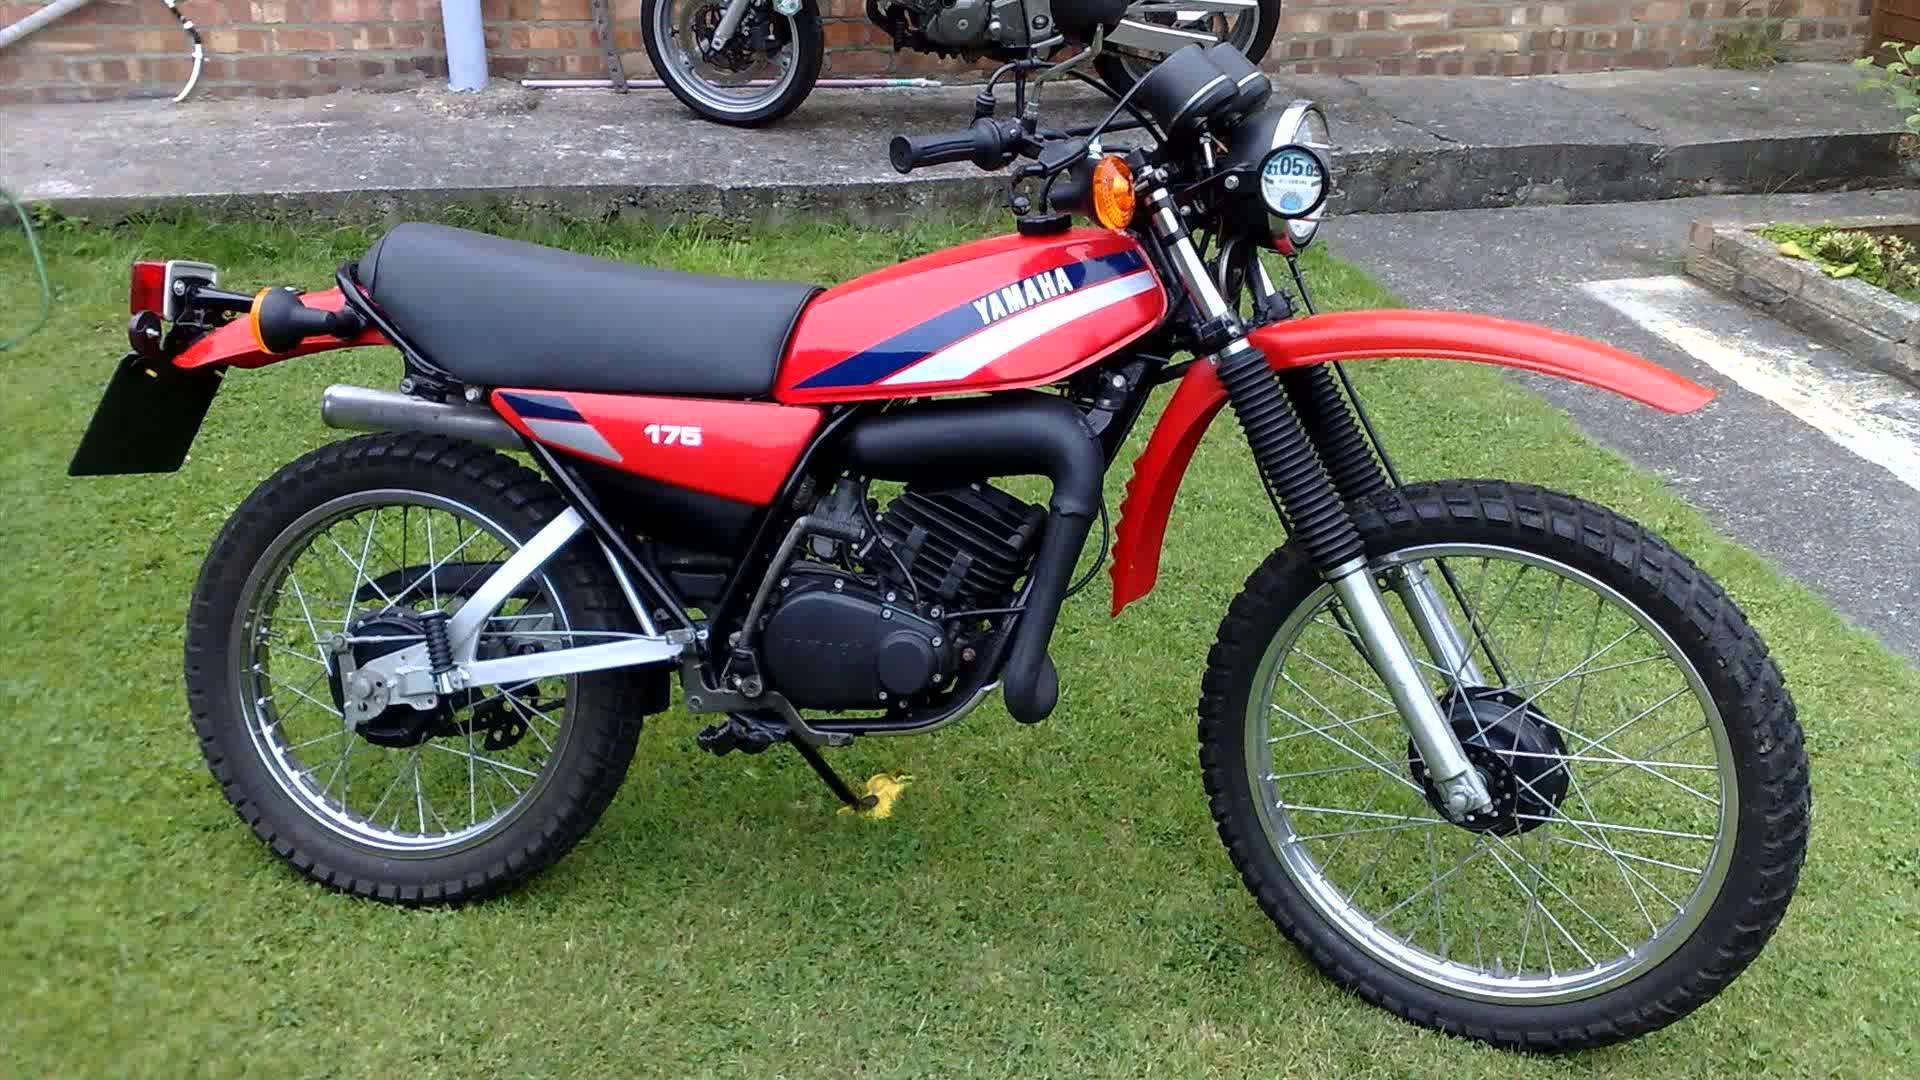 1982 yamaha dt 175 mx pics specs and information for Yamaha 175 sho